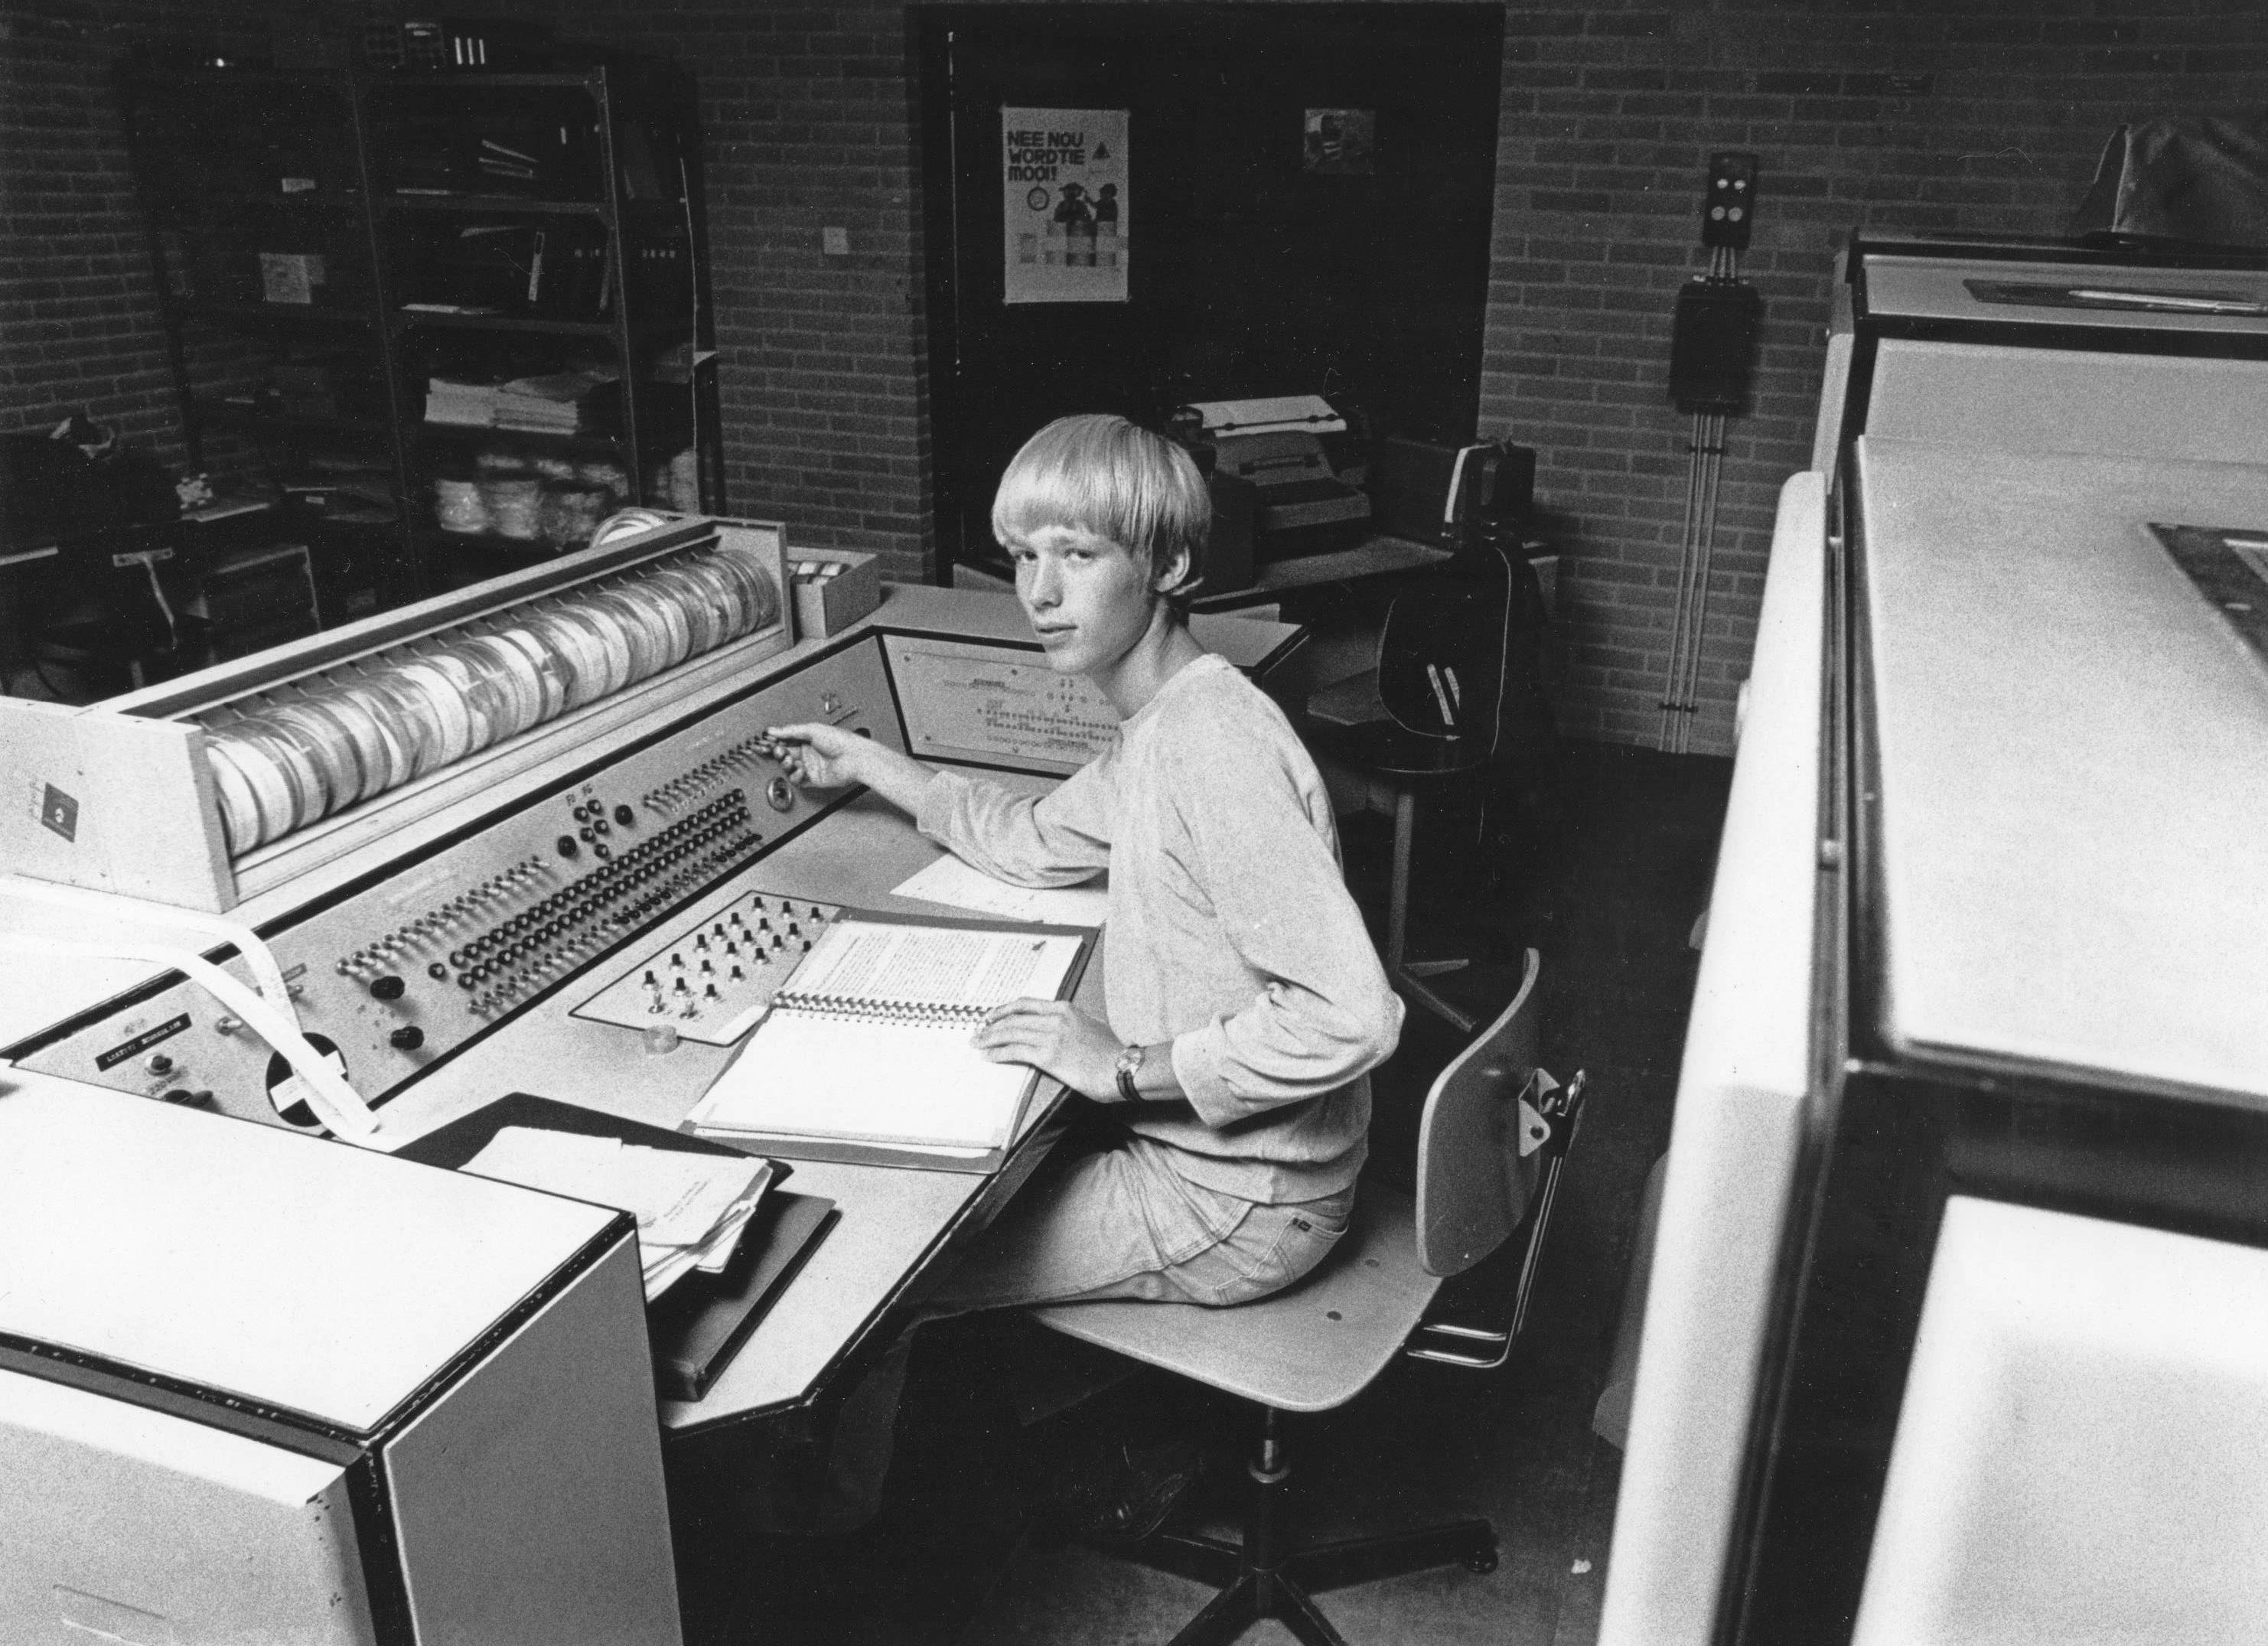 Me in October 1979 behind an old X1 from Electrologica, the first commercial computer in the Netherlands. It shows my early interest for computers.